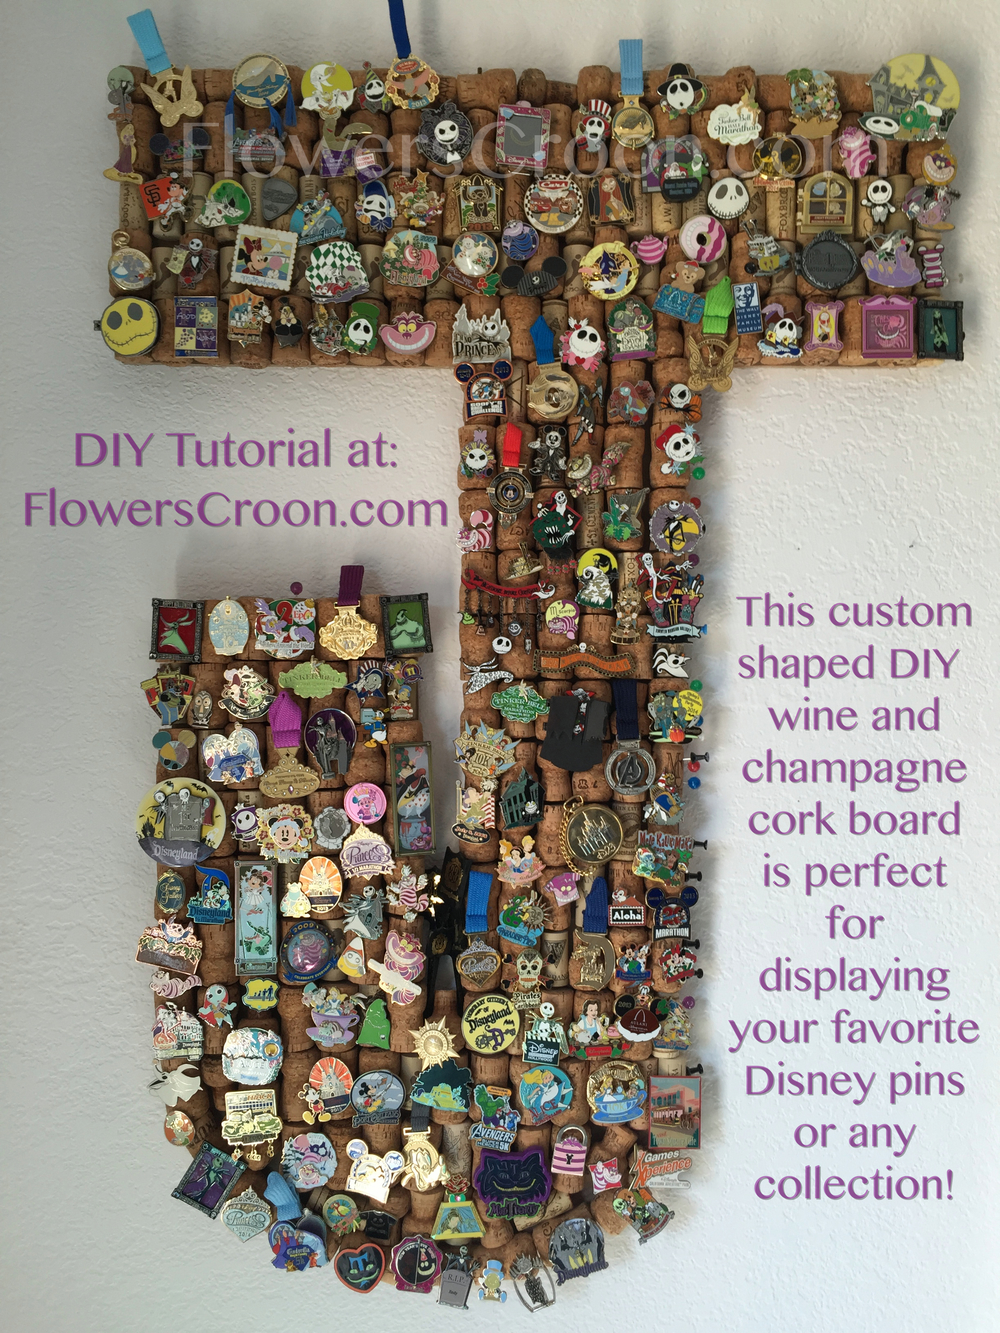 DIY-Disney-Pin-Wine-Cork-Board.jpg